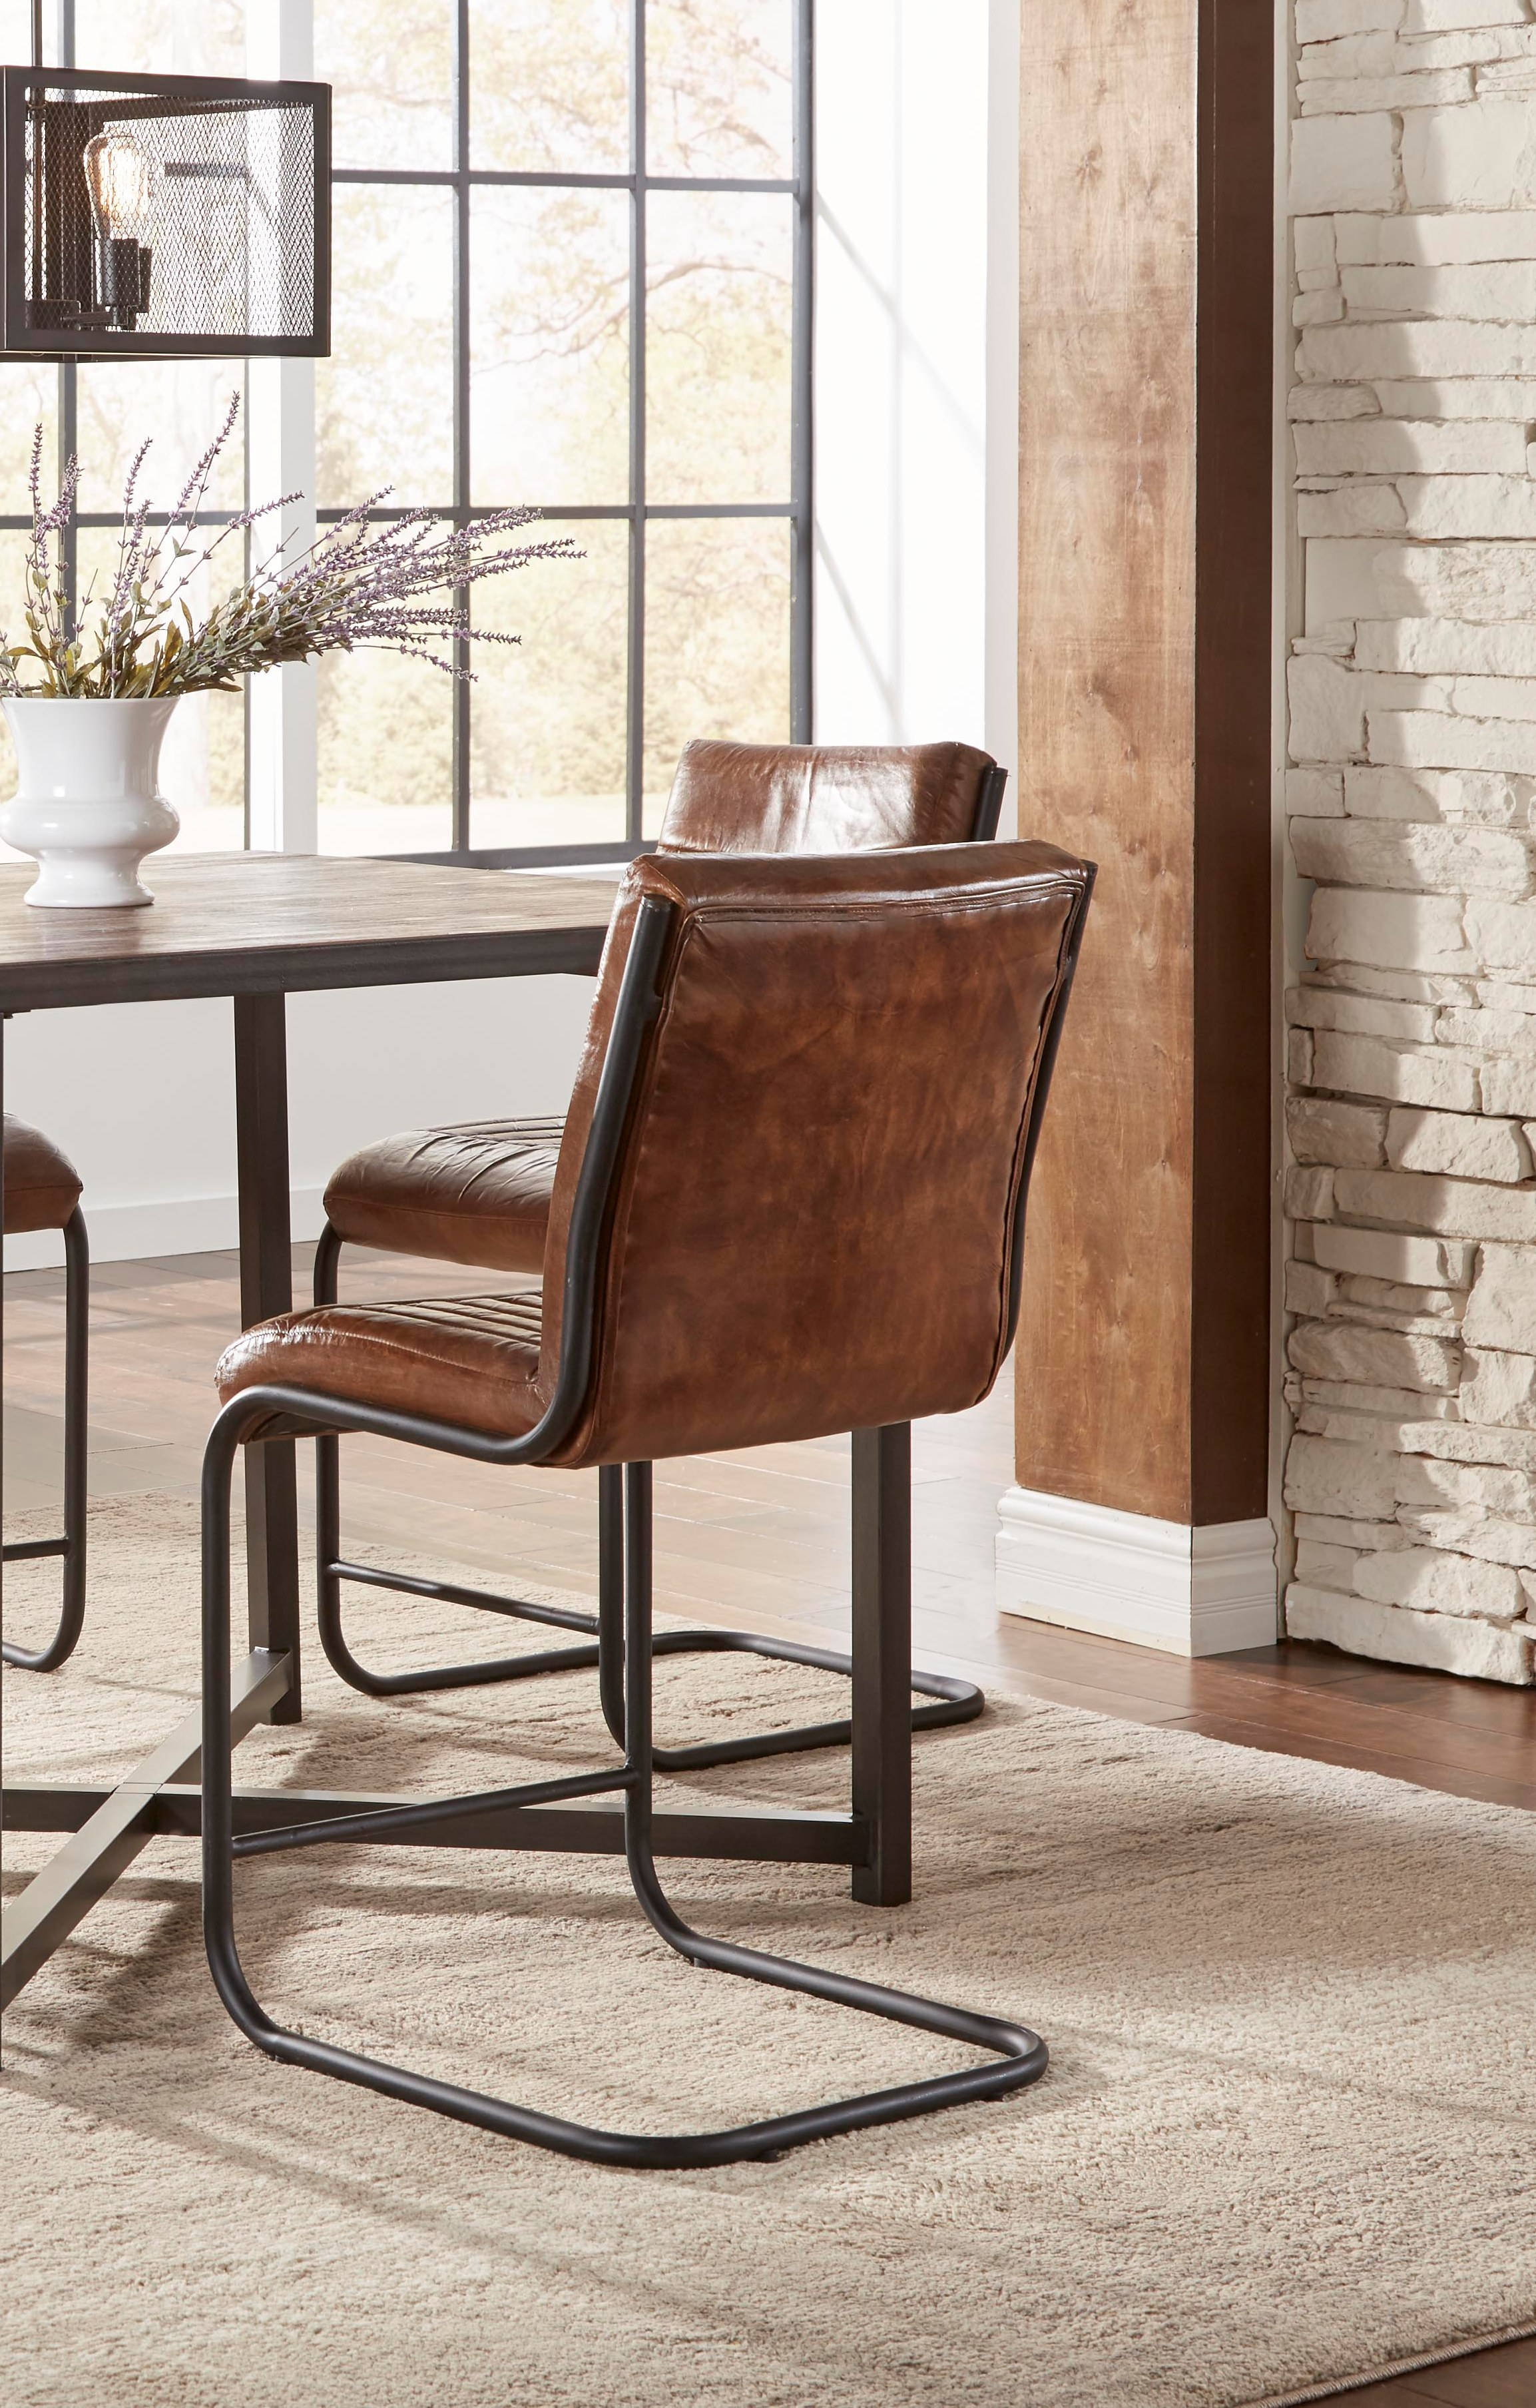 Surprising 2 Jofran Furniture Aviator Brown Black Leather Counter Height Stools Machost Co Dining Chair Design Ideas Machostcouk